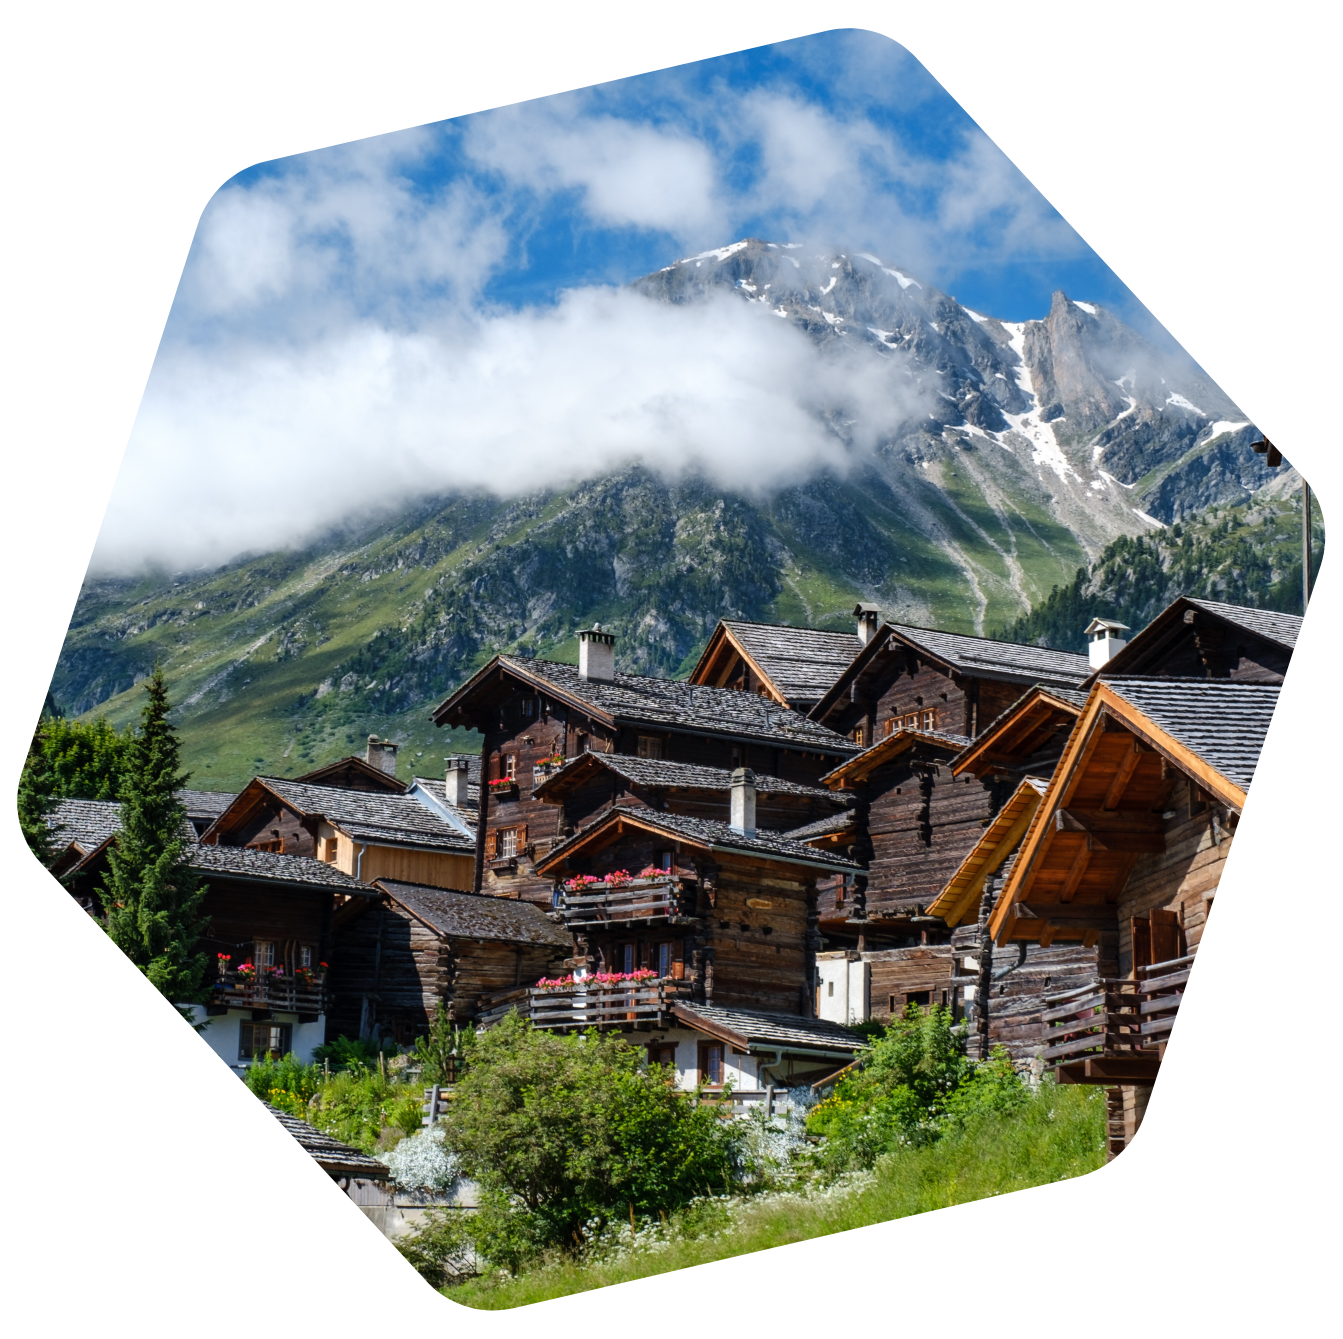 Swiss chalet in mountains